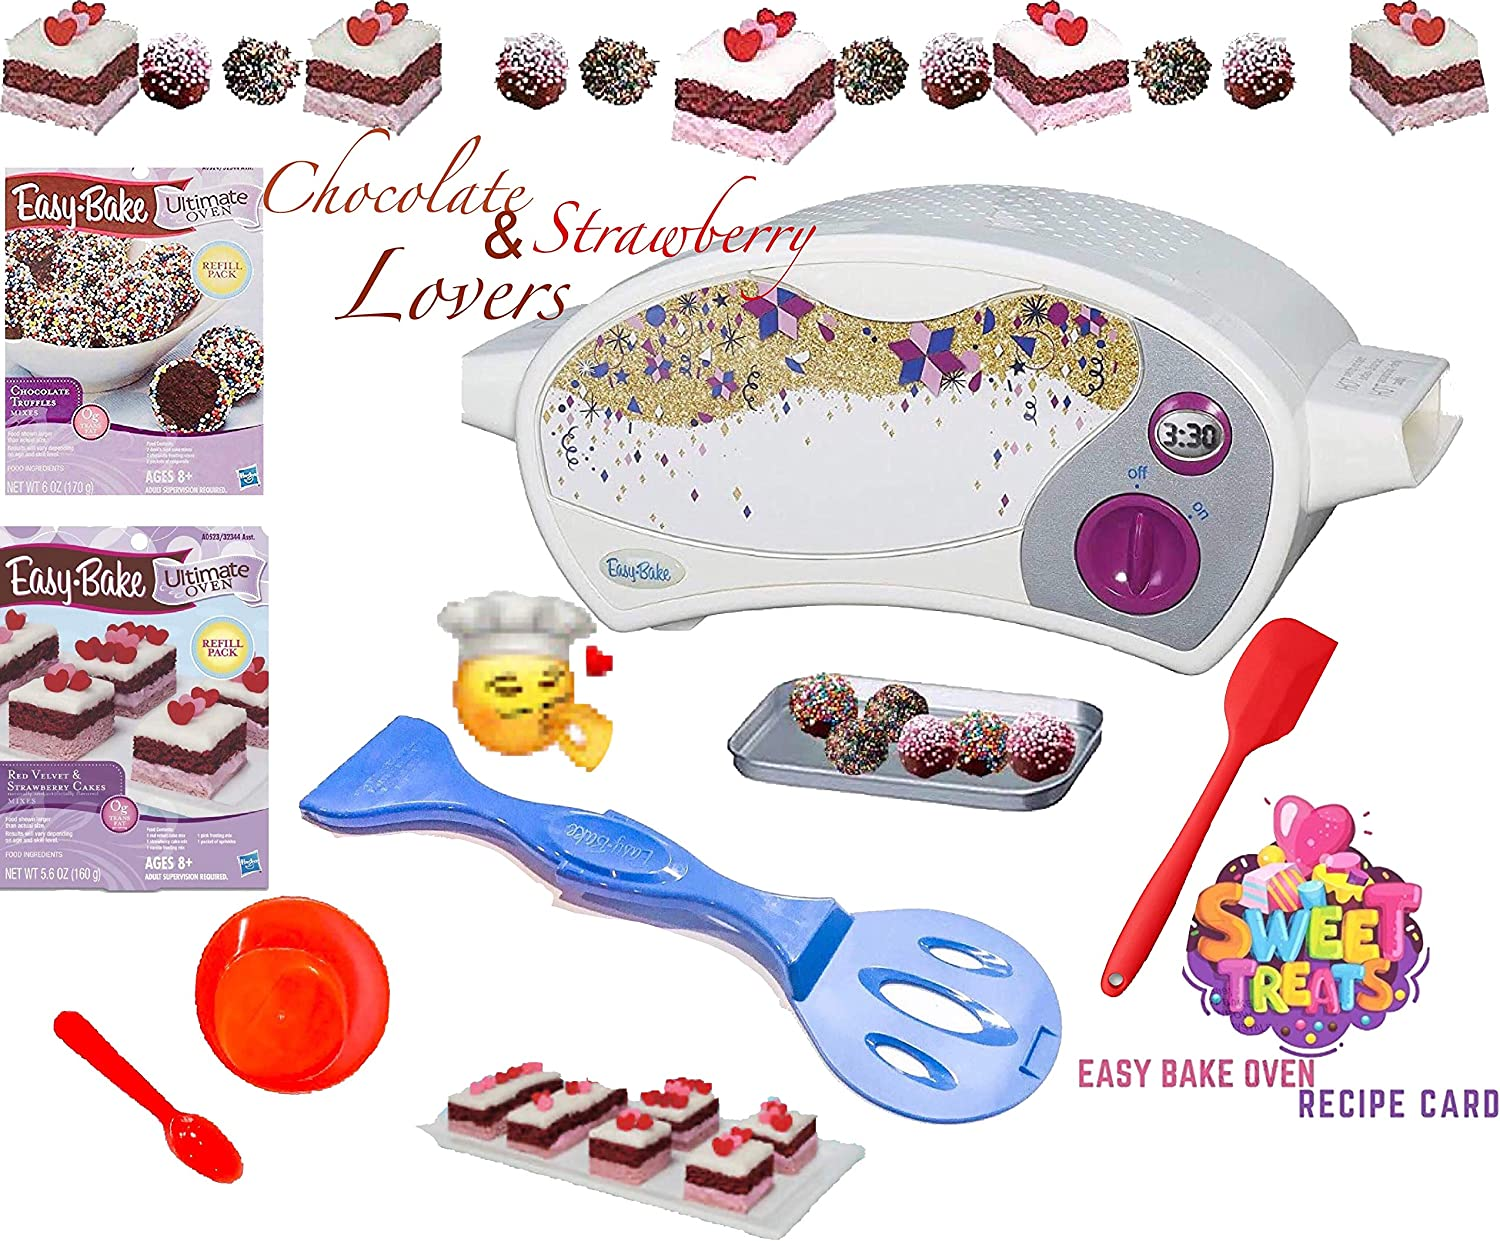 Party Lab 365 Easy Bake Ultimate Oven Baking Star Edition + 2 Oven Refill Mixes + 2 Sweet Treats Tasty Oven Recipes + Mixing Bowl, Spoon and Extra Baking Accessories (7 Total Items) (red)